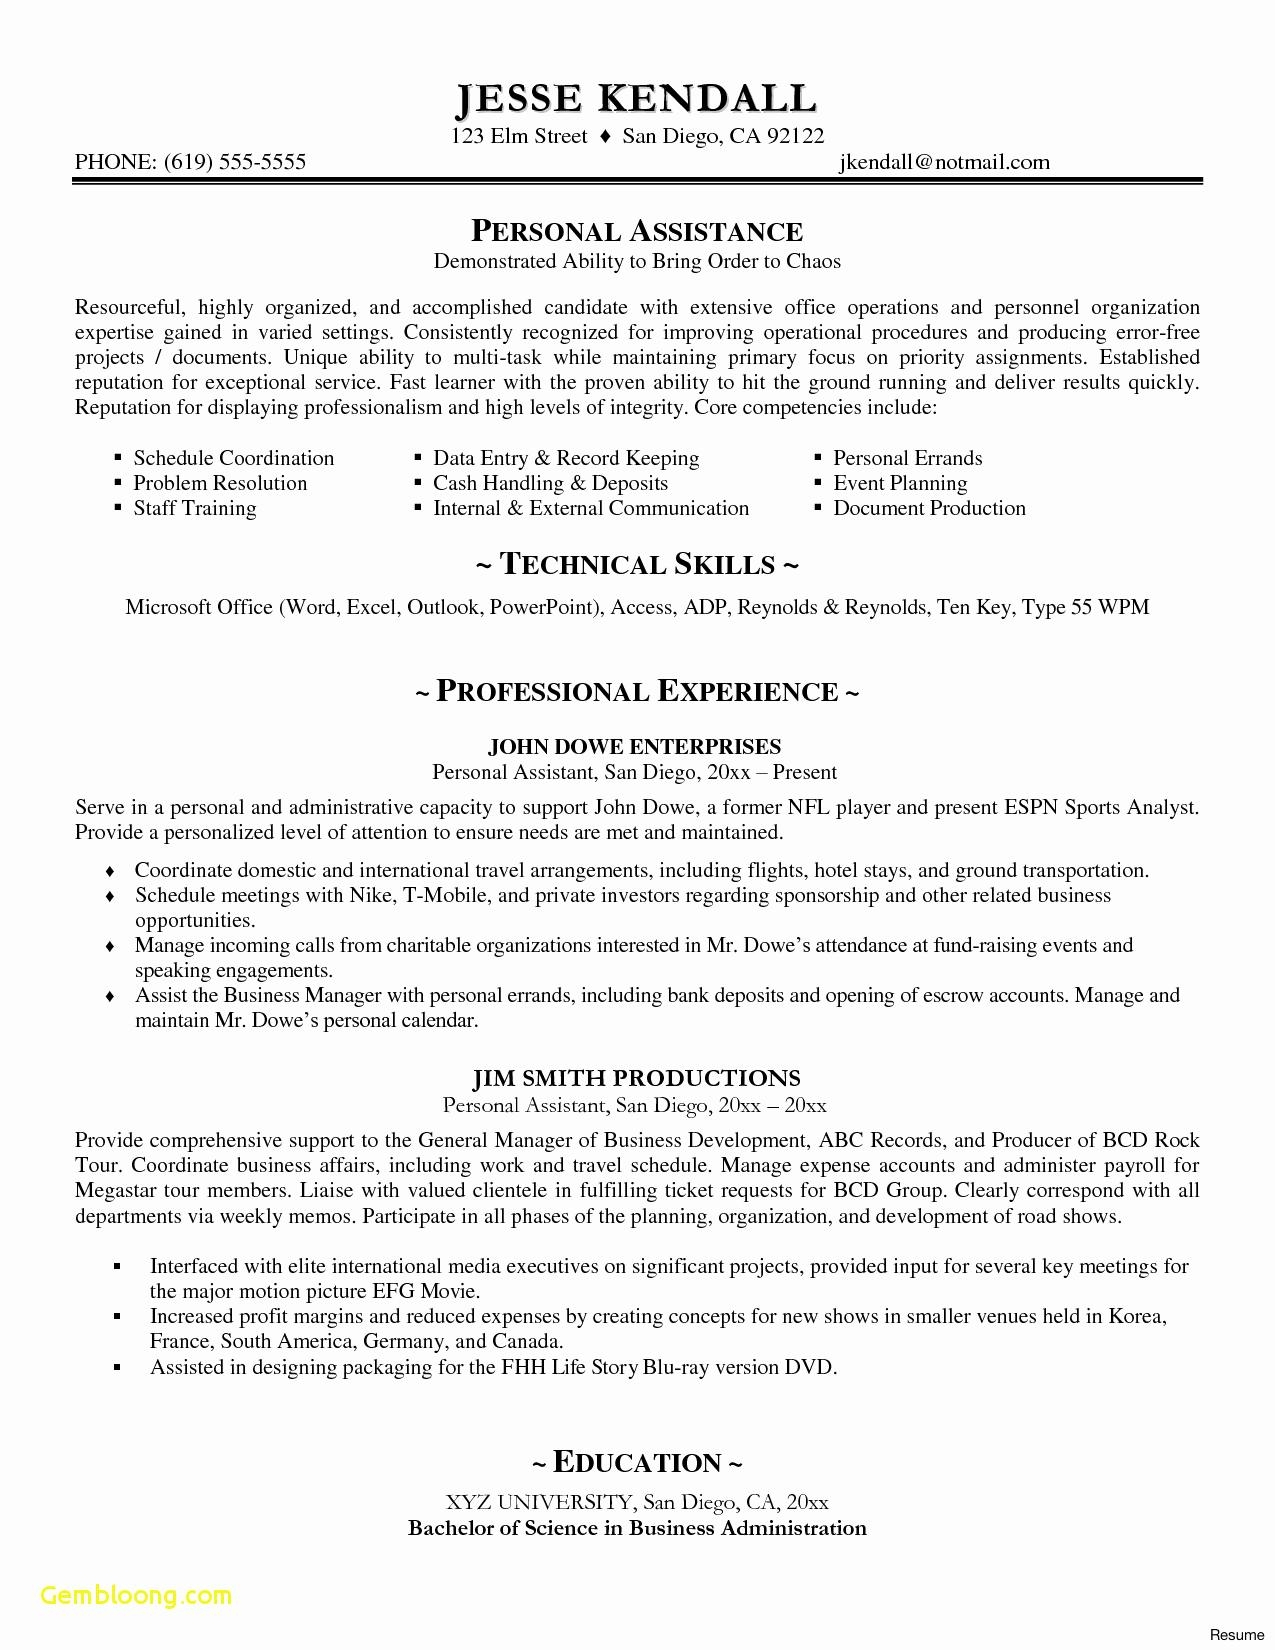 Motocross Sponsorship Resume Template - Cover Letter and Resume Template Best Resume Samples Doc New